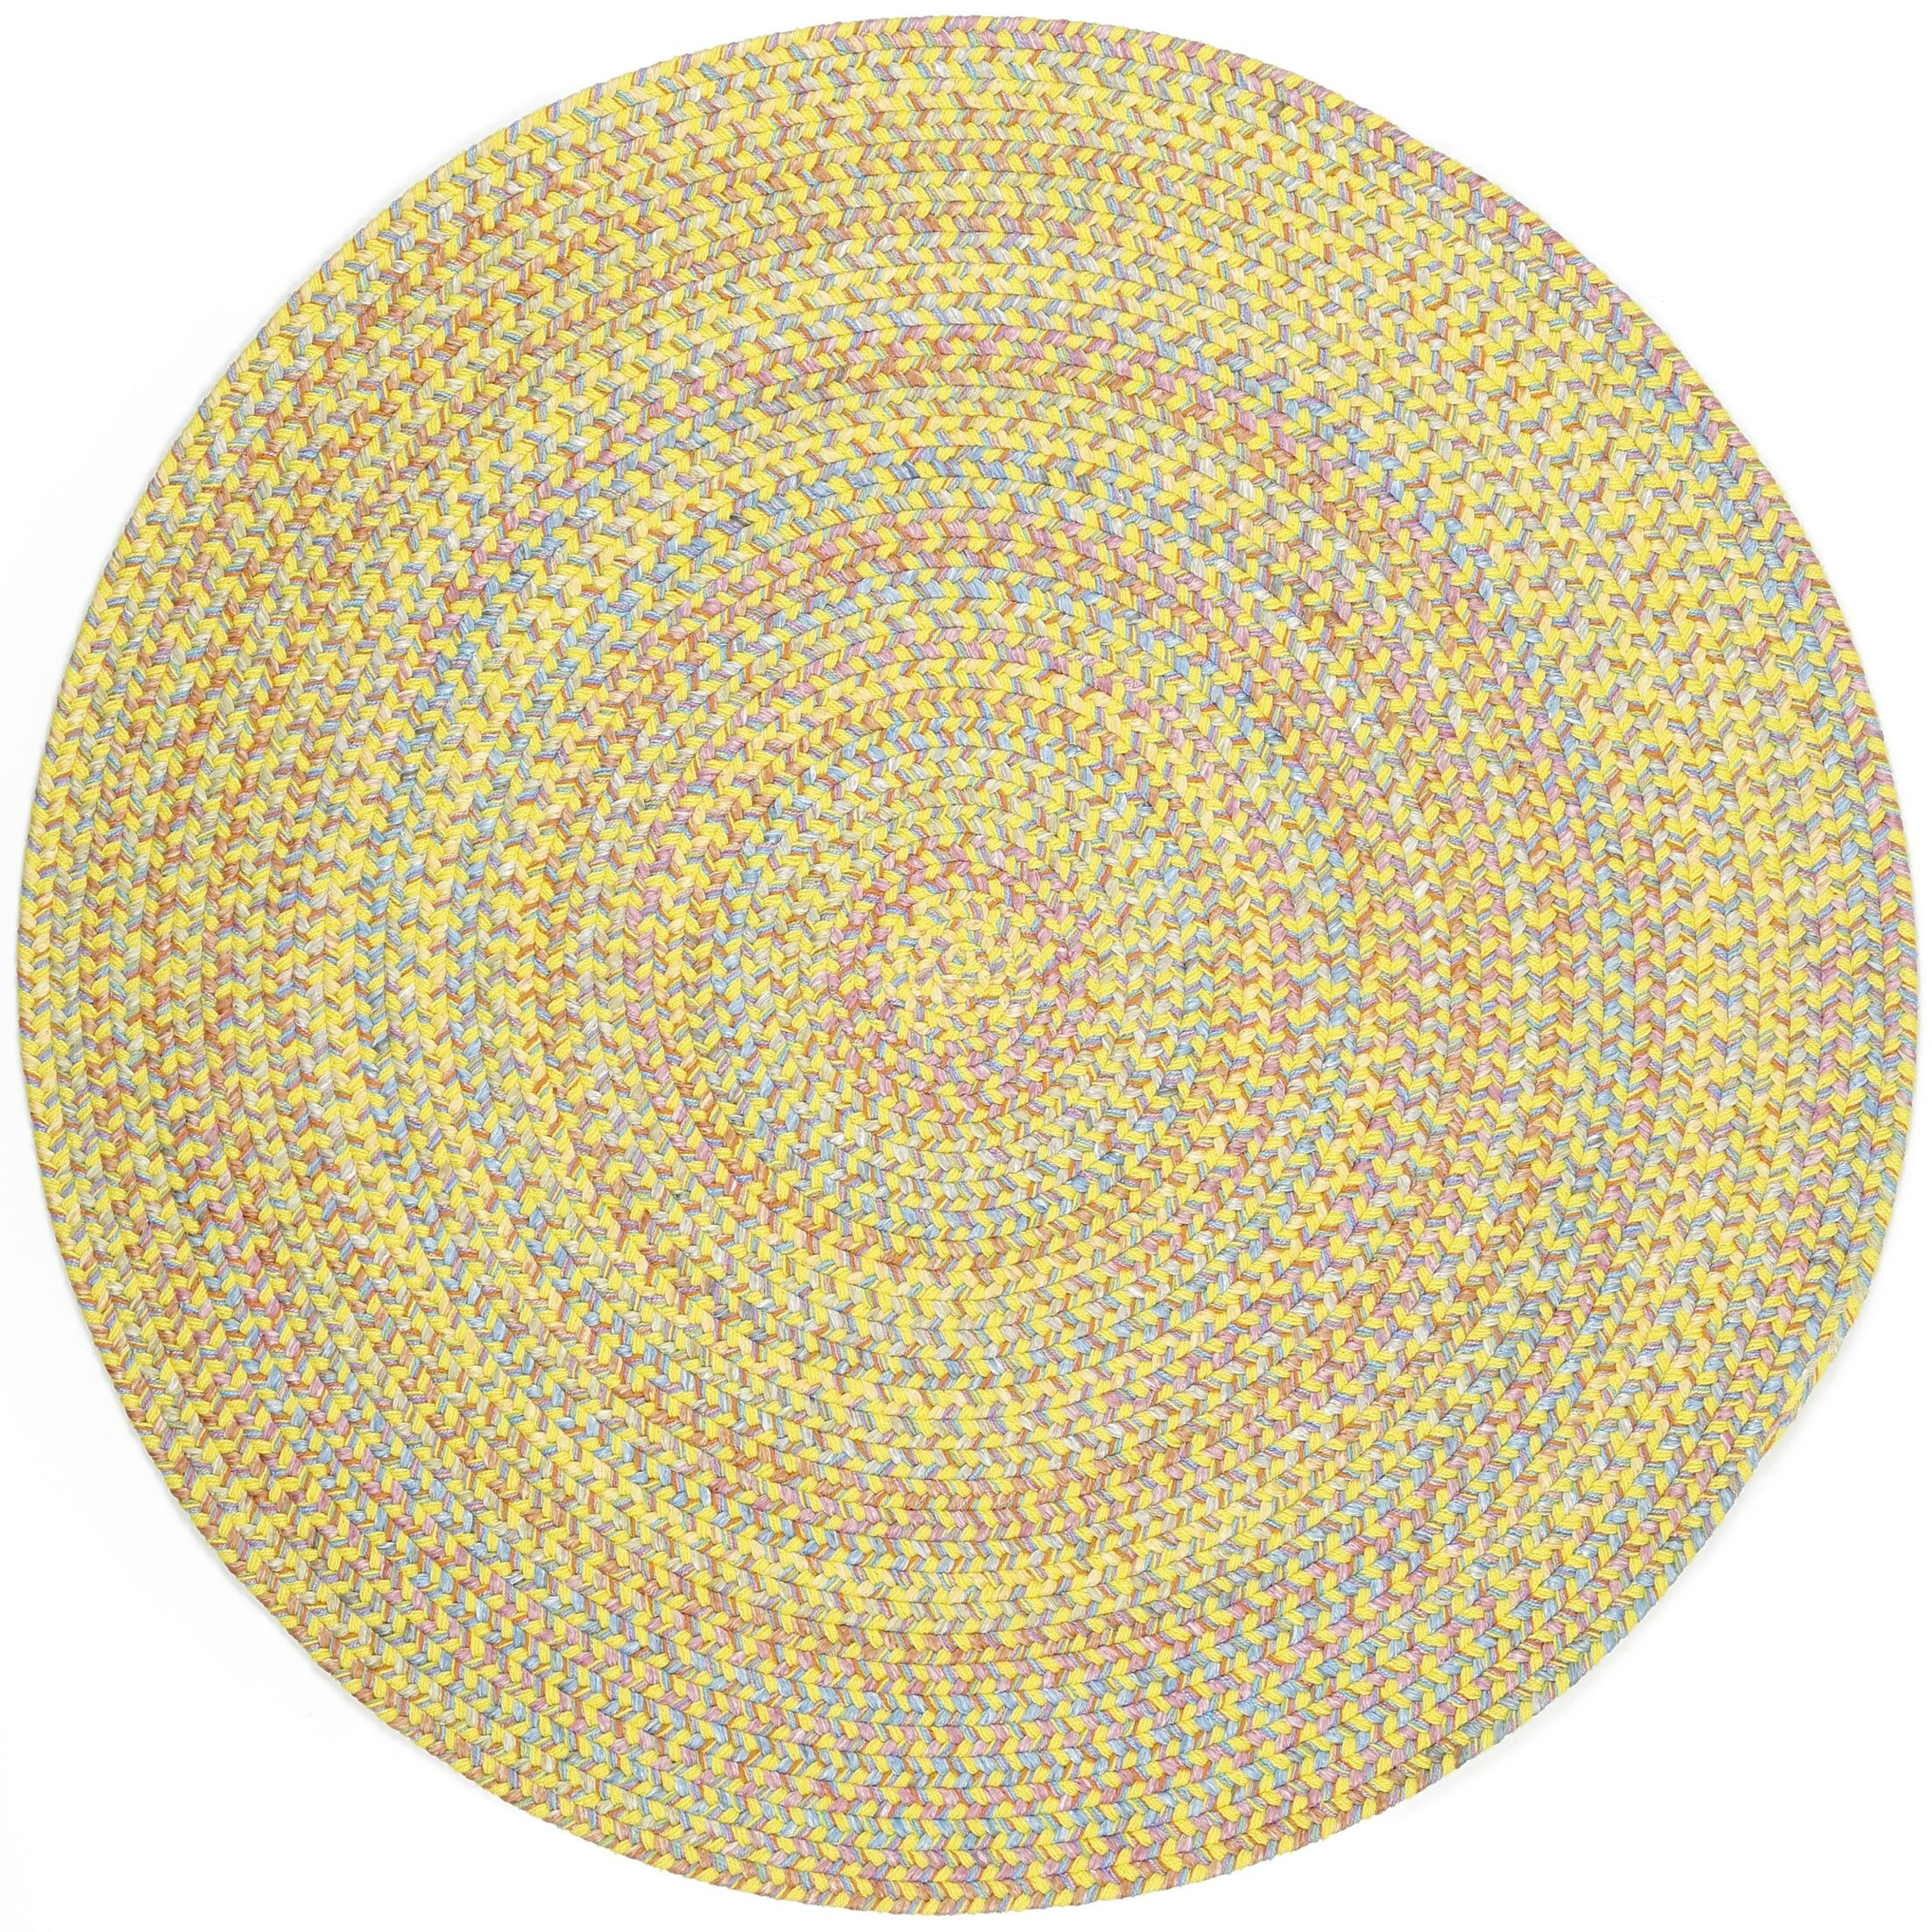 Sabalgarh Yellow Indoor/Outdoor Area Rug Rug Size: Round 6'